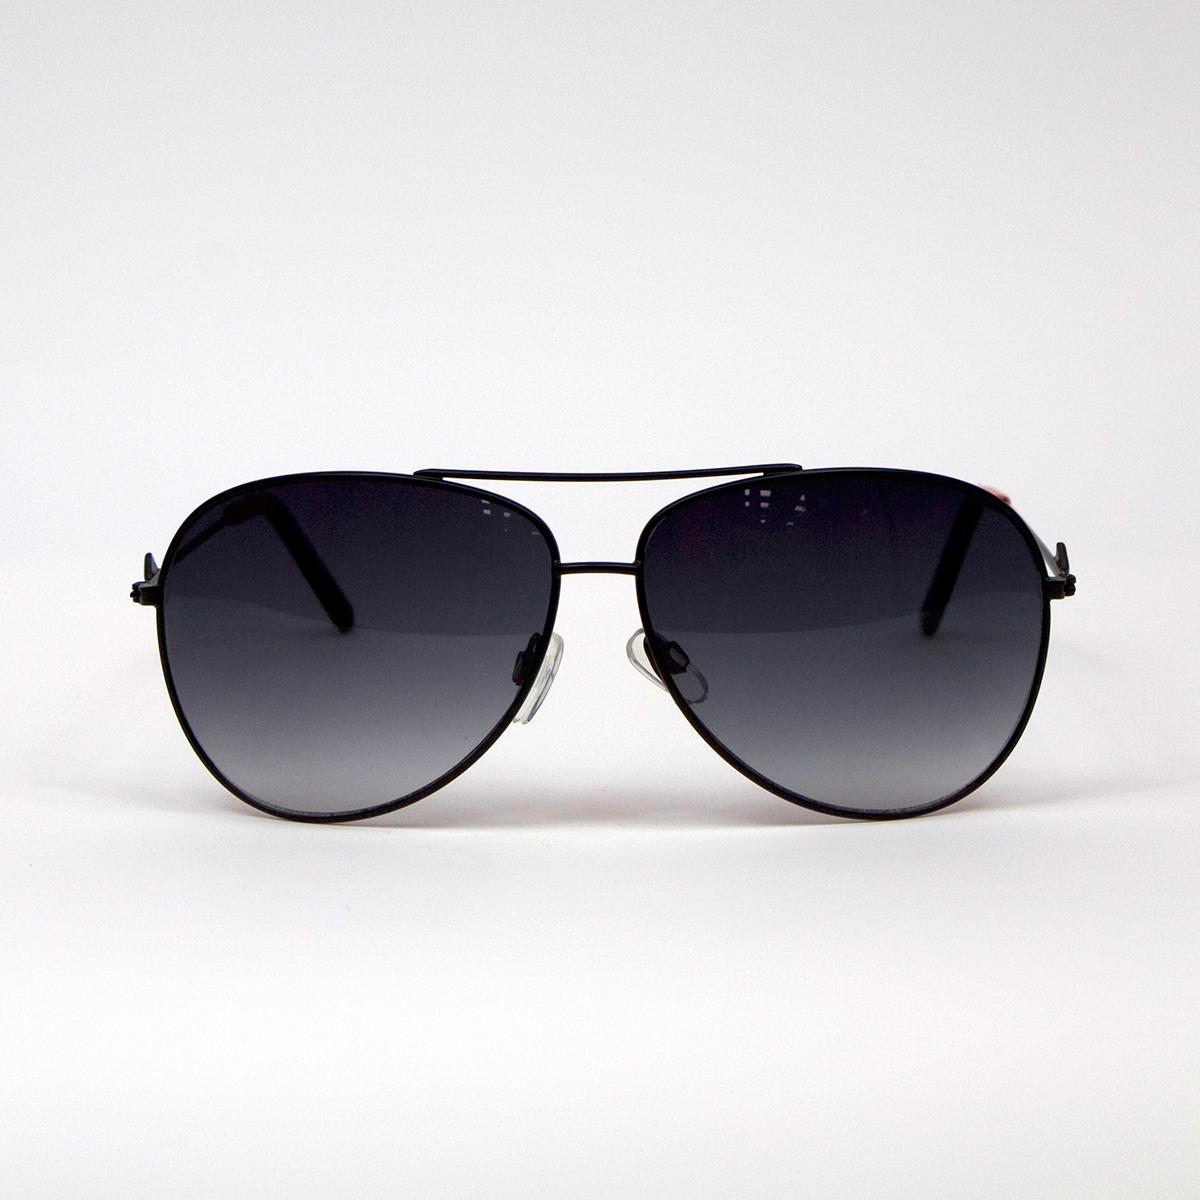 Male Sunglasses Png image #38376